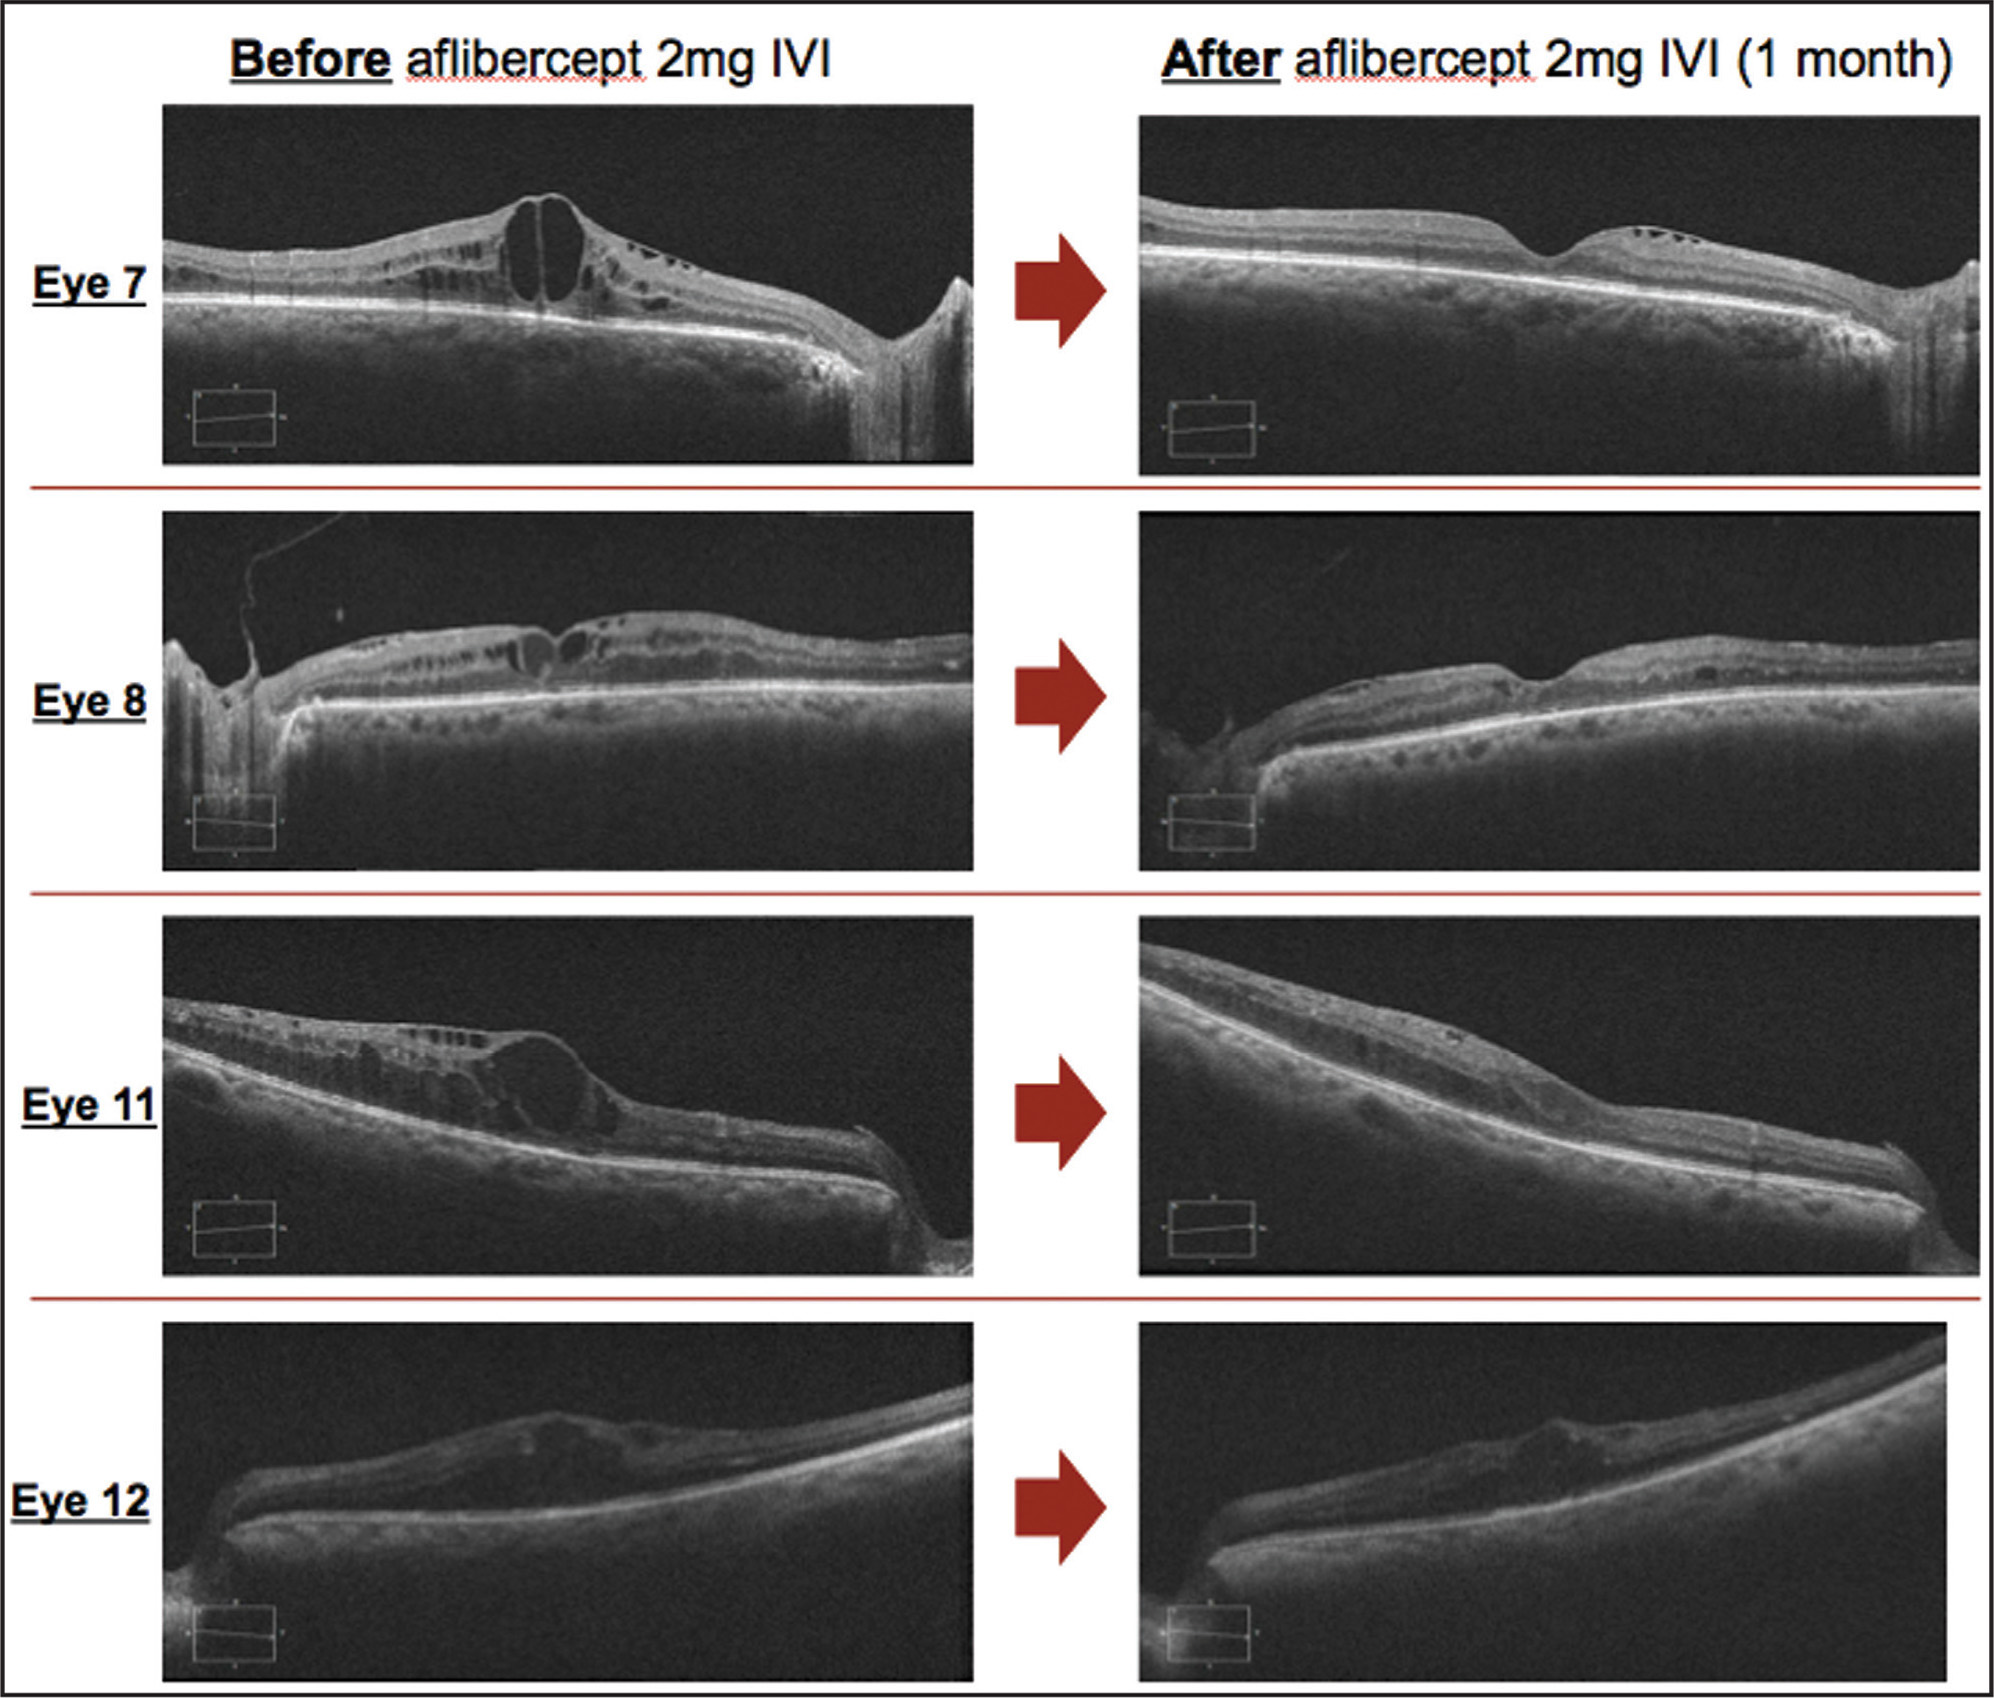 Improved diabetic macular edema as seen with spectral-domain optical coherence tomography after aflibercept injection.